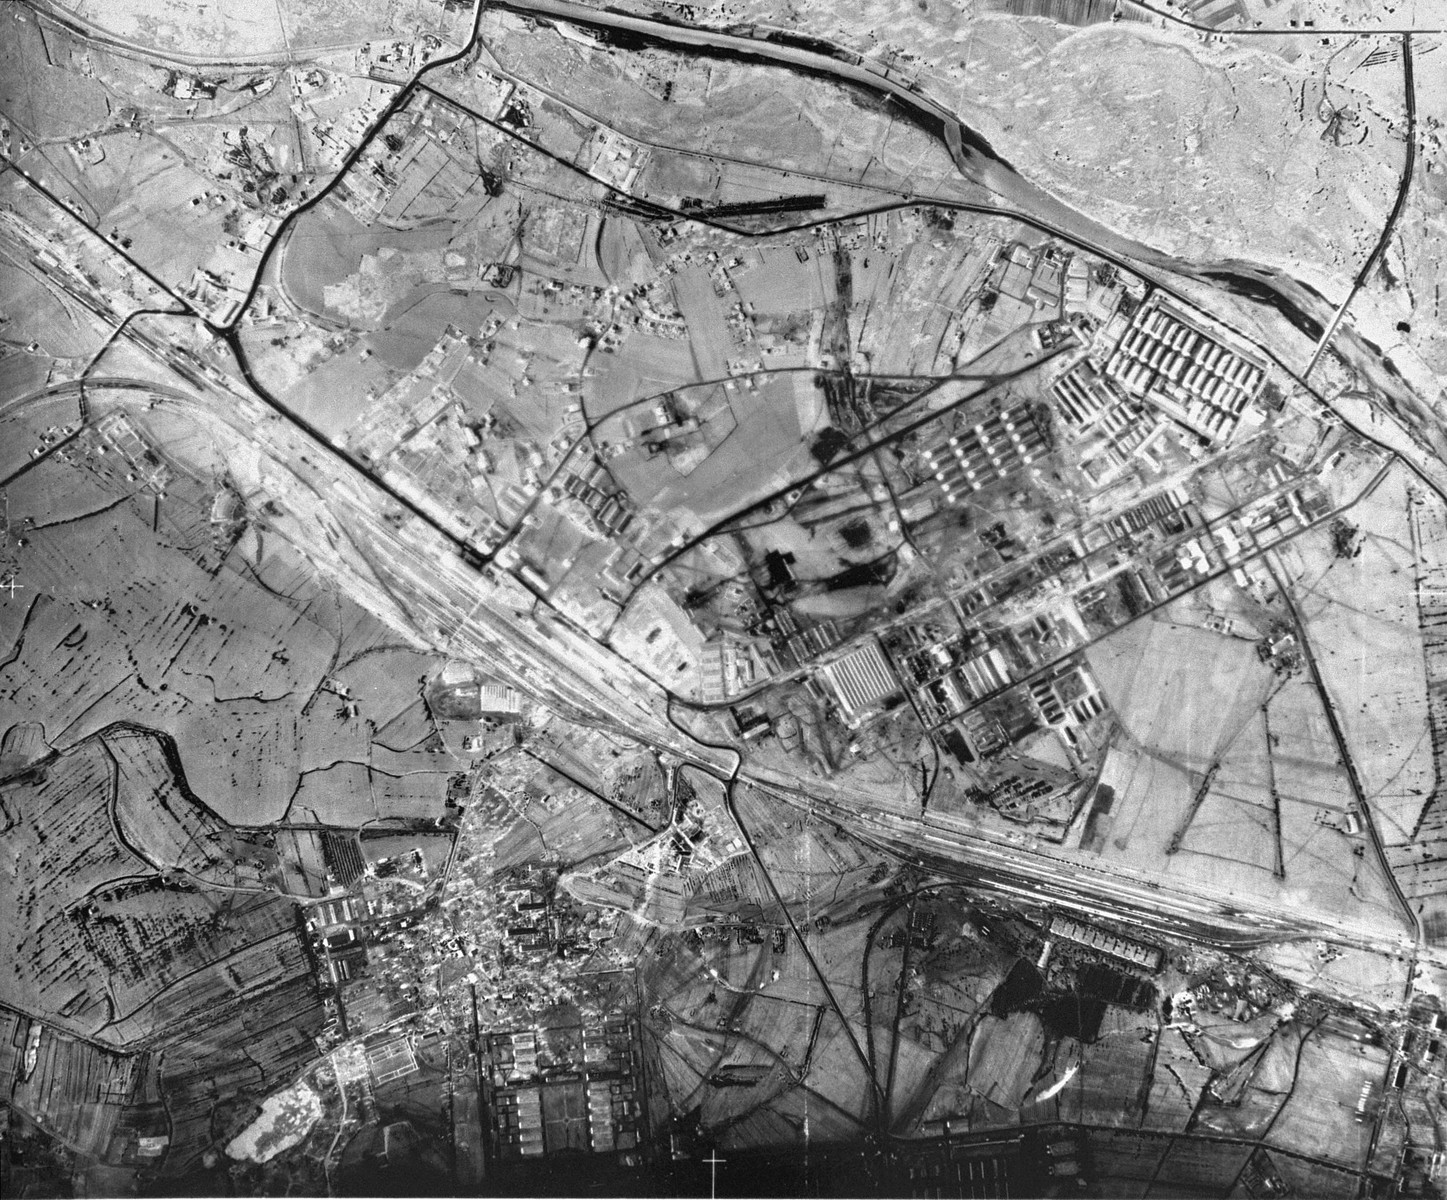 An aerial reconnaissance photograph of Auschwitz I showing the prisoners' barracks and administrative buildings which are visible along with the main railway lines.